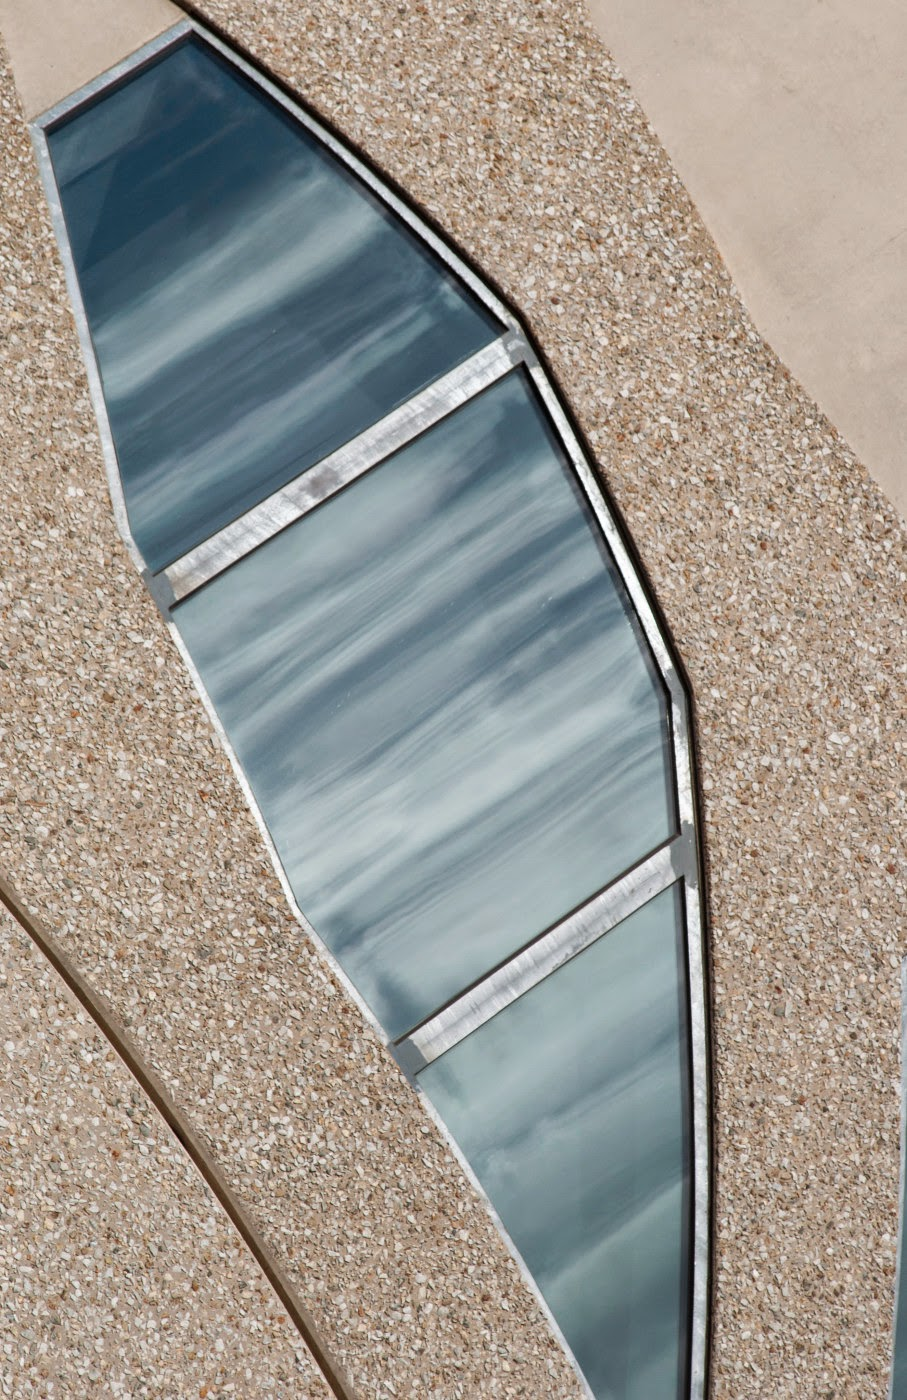 Postmodern, postmodernist, façade, lyons, lyons architecture, Australia, Australian, Tasmania, Hobart, University of Tasmania, medical science 1, MS1, abstract, abstraction, abstractional, graphic, tim Macauley, the light monkey collective,  UTAS, graphical